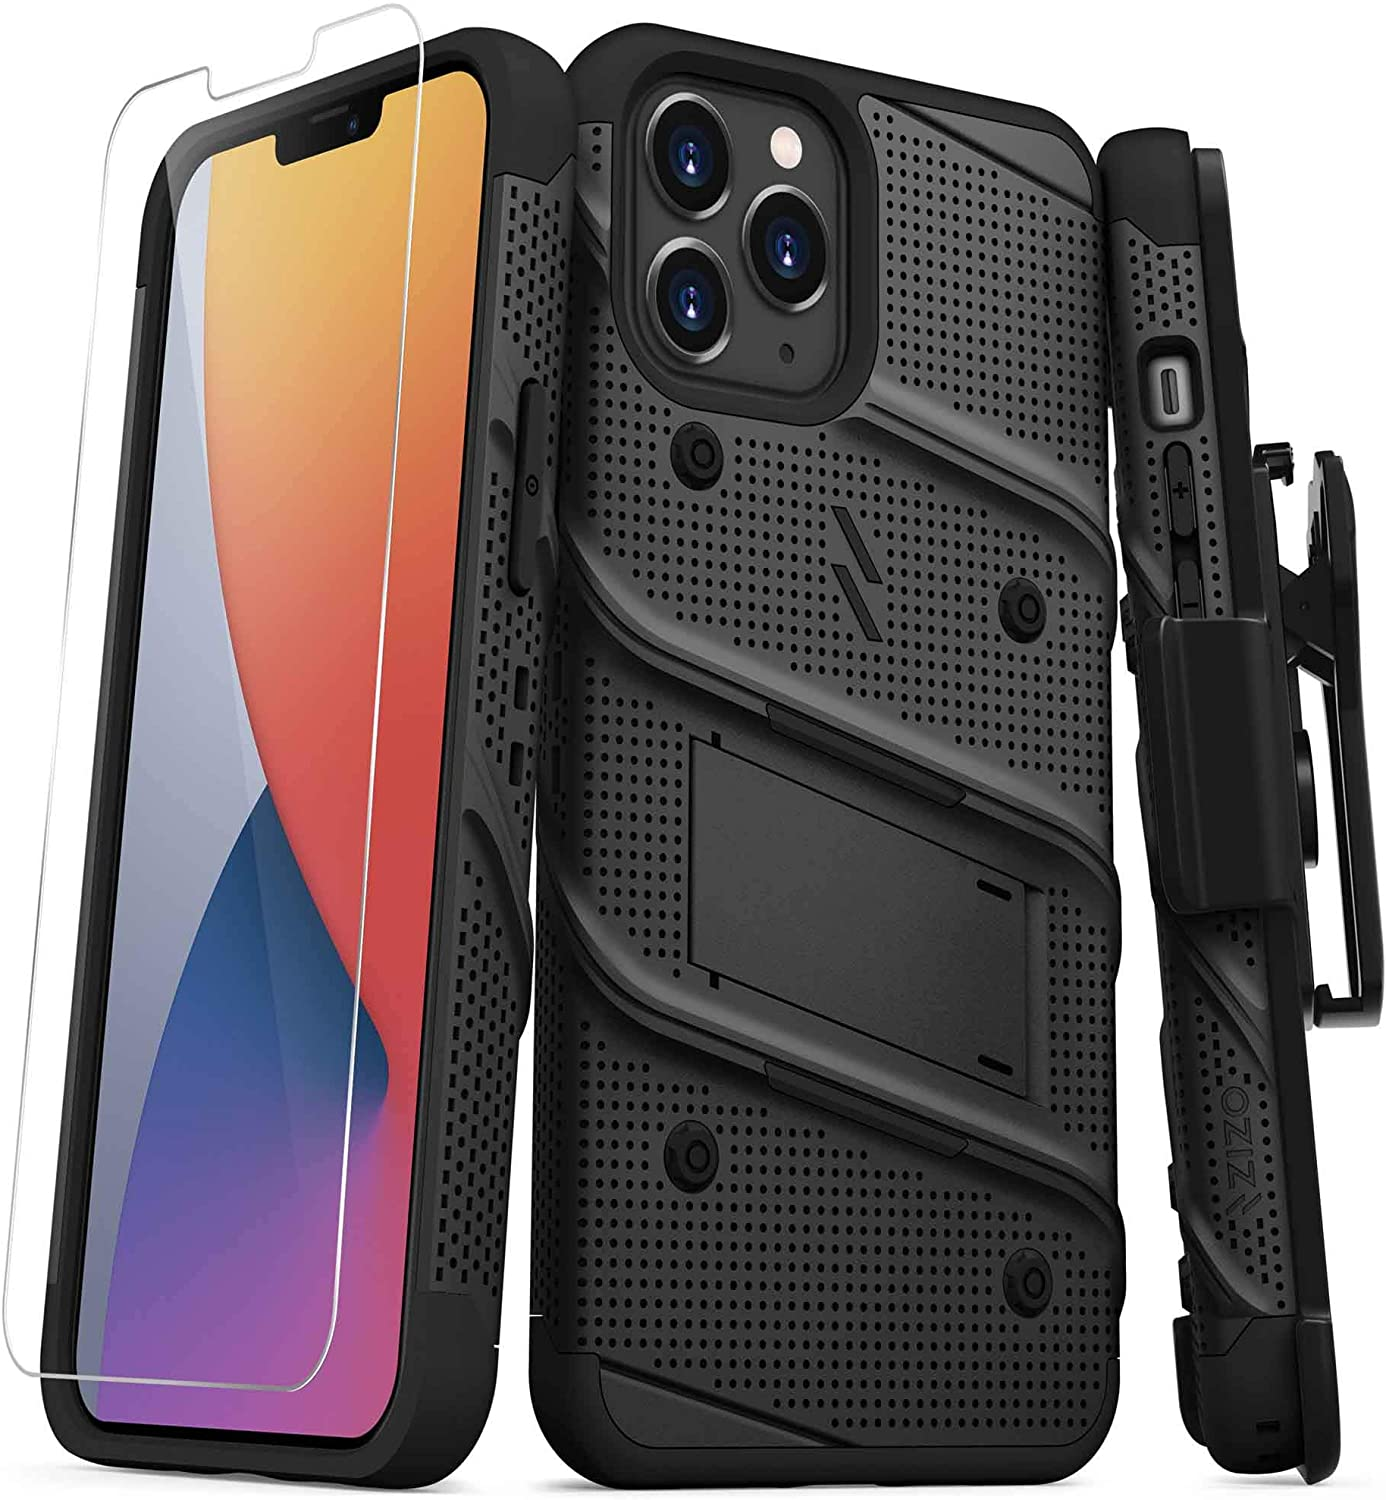 ZIZO Bolt Series for iPhone 12 Pro Max Case with Screen Protector Kickstand Holster Lanyard - Black